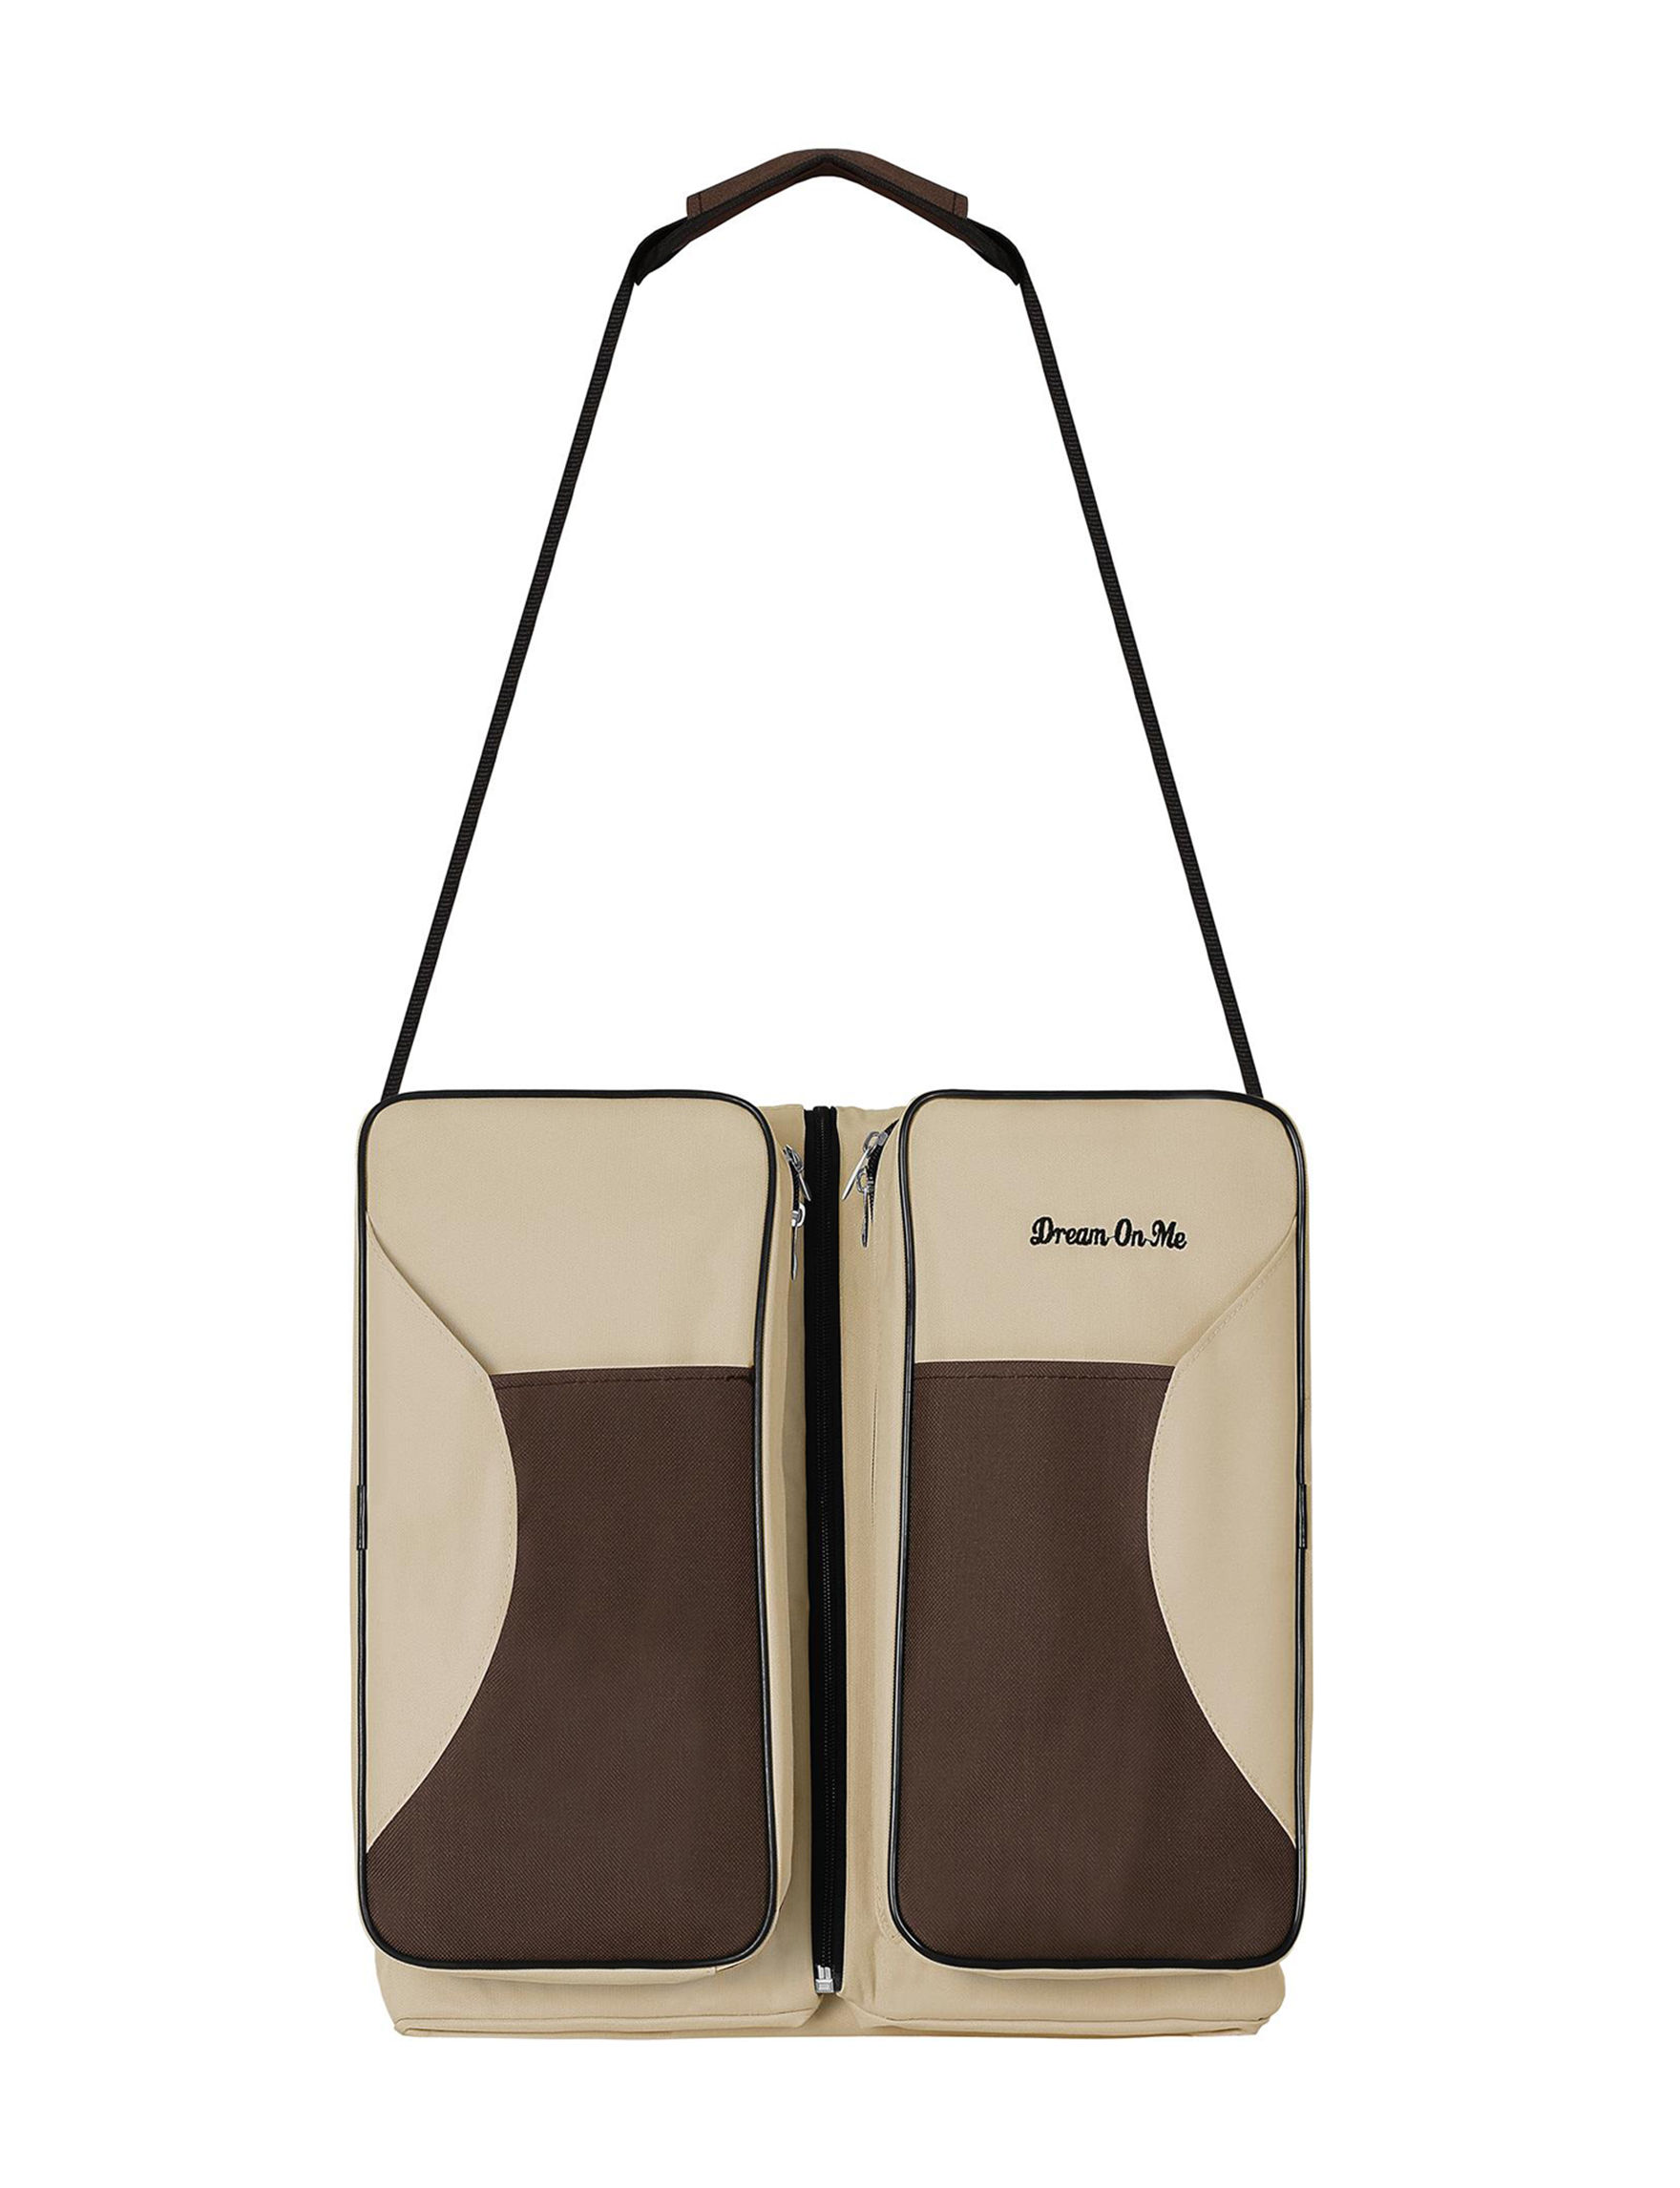 Dream On Me Beige / Brown Carriers & Totes Diaper Bags